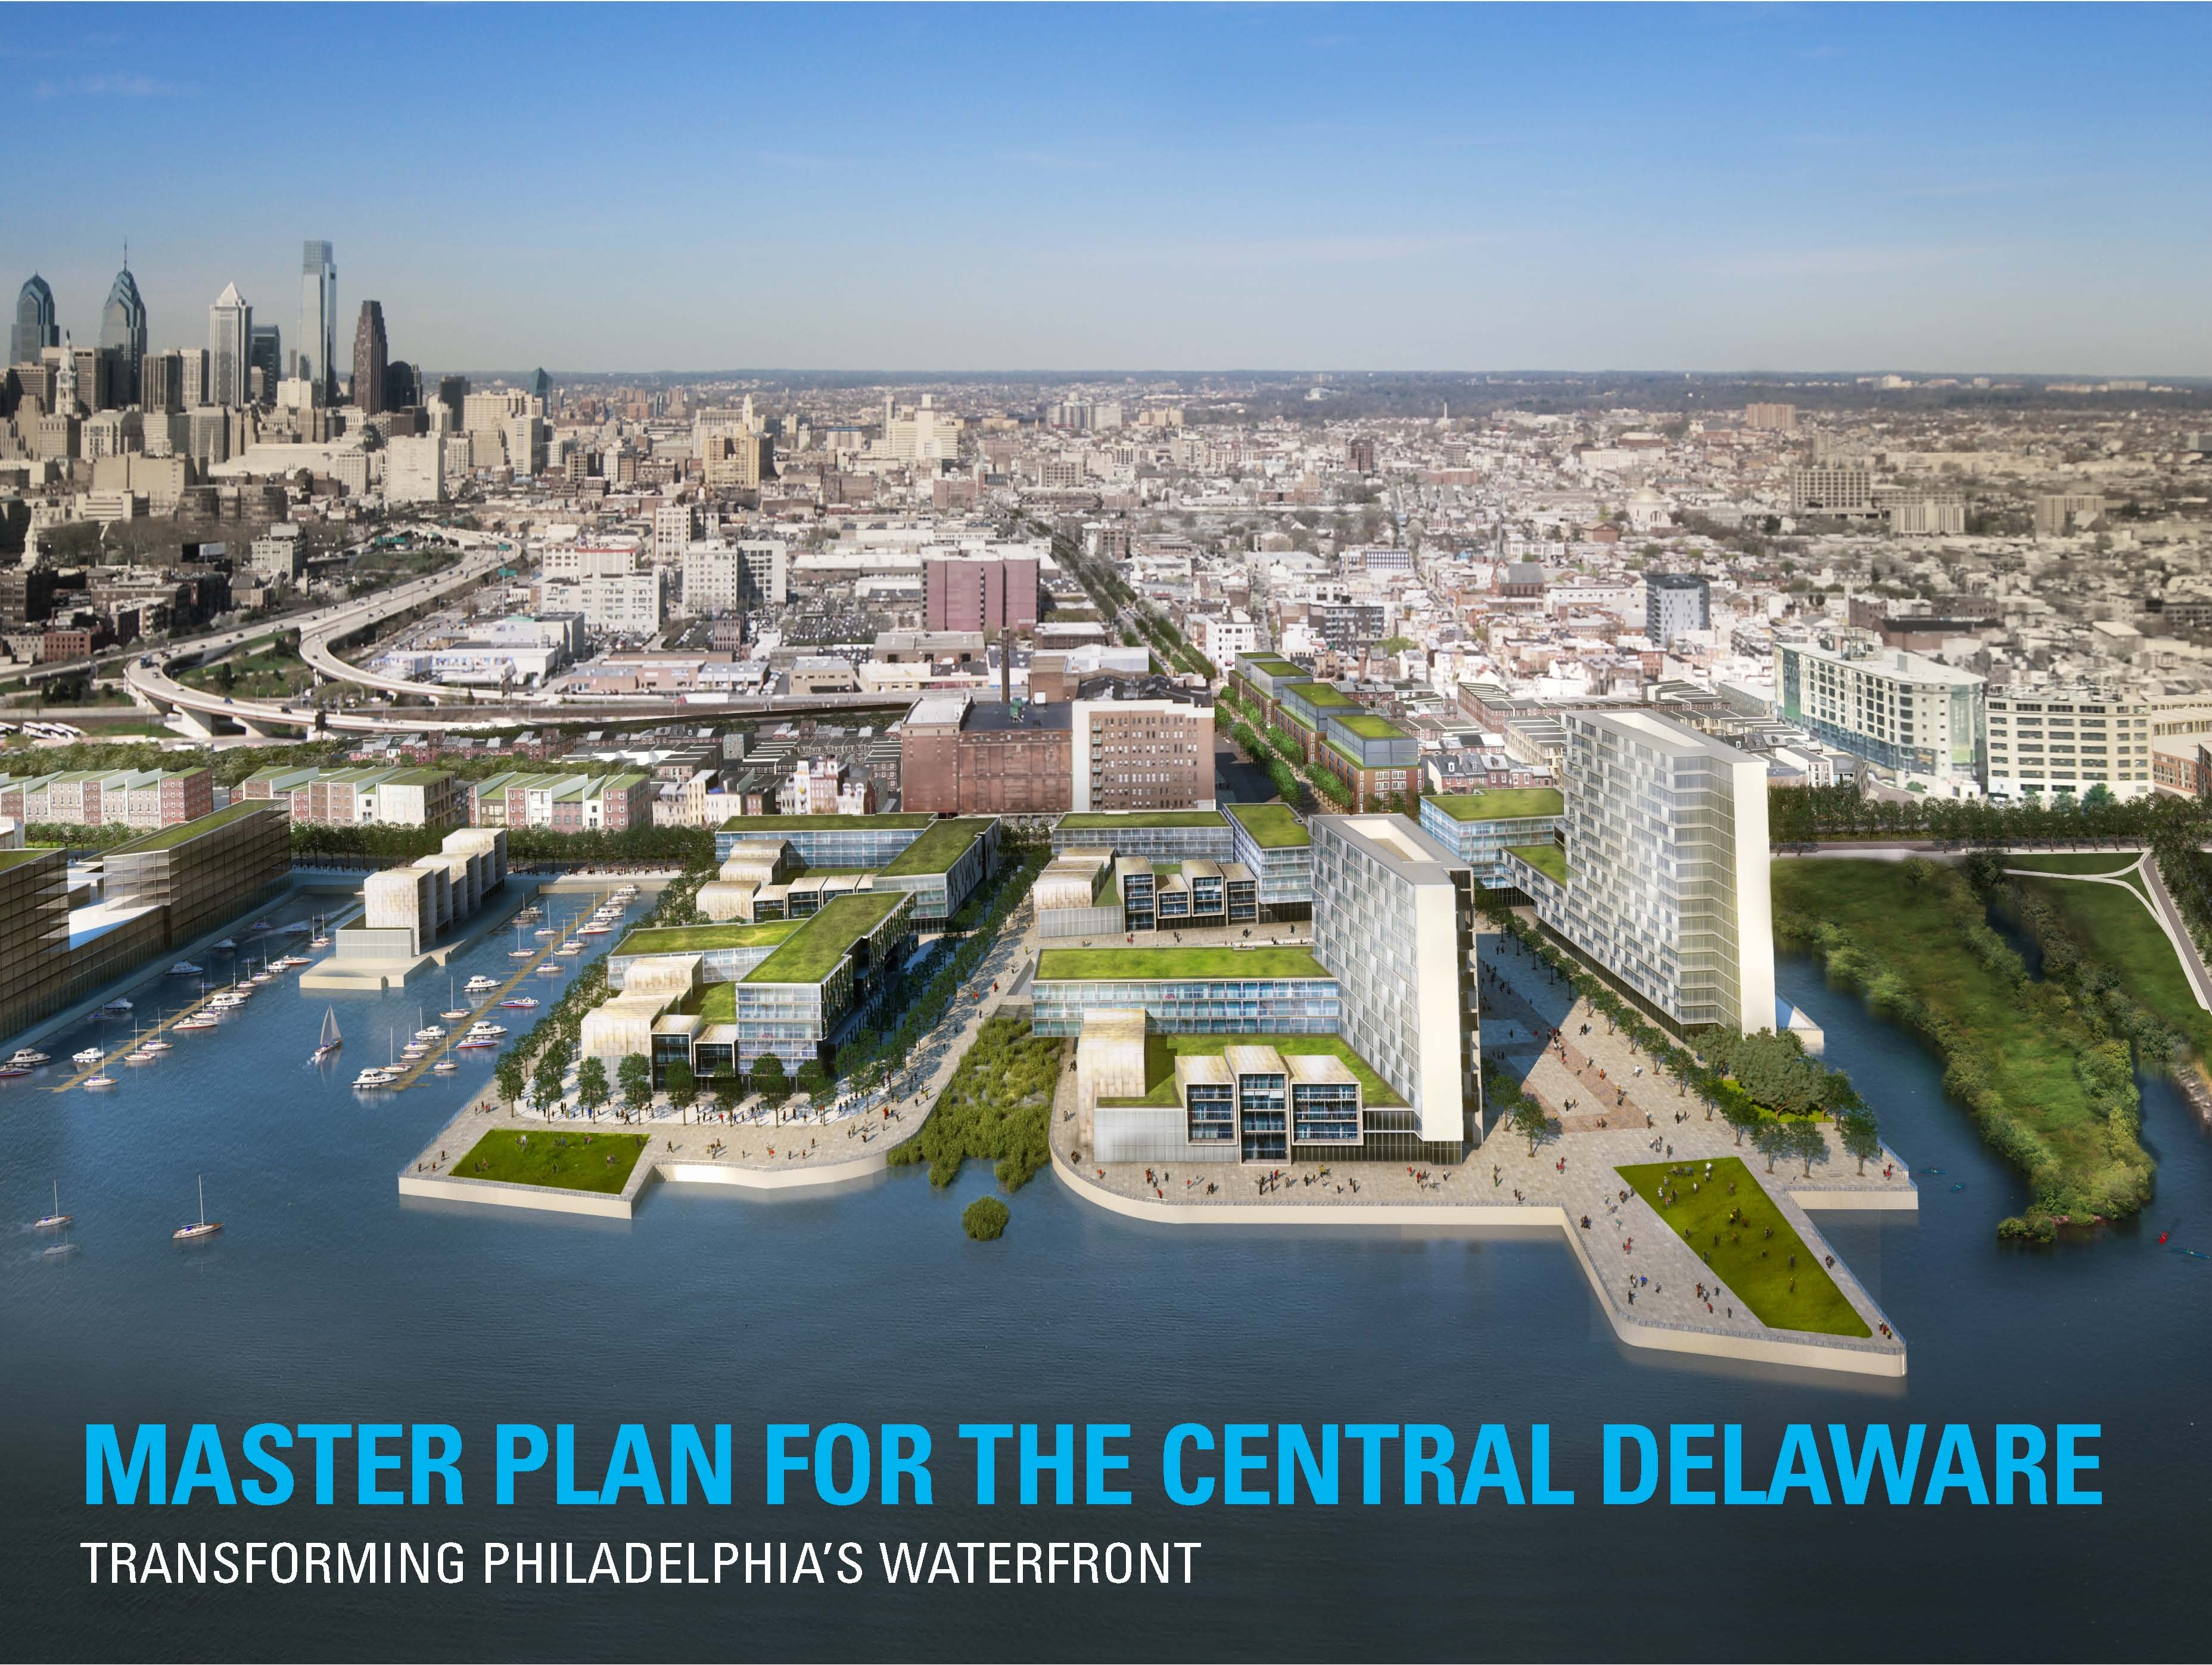 The Planning Commission adopted the Master Plan for the Central Delaware in March.